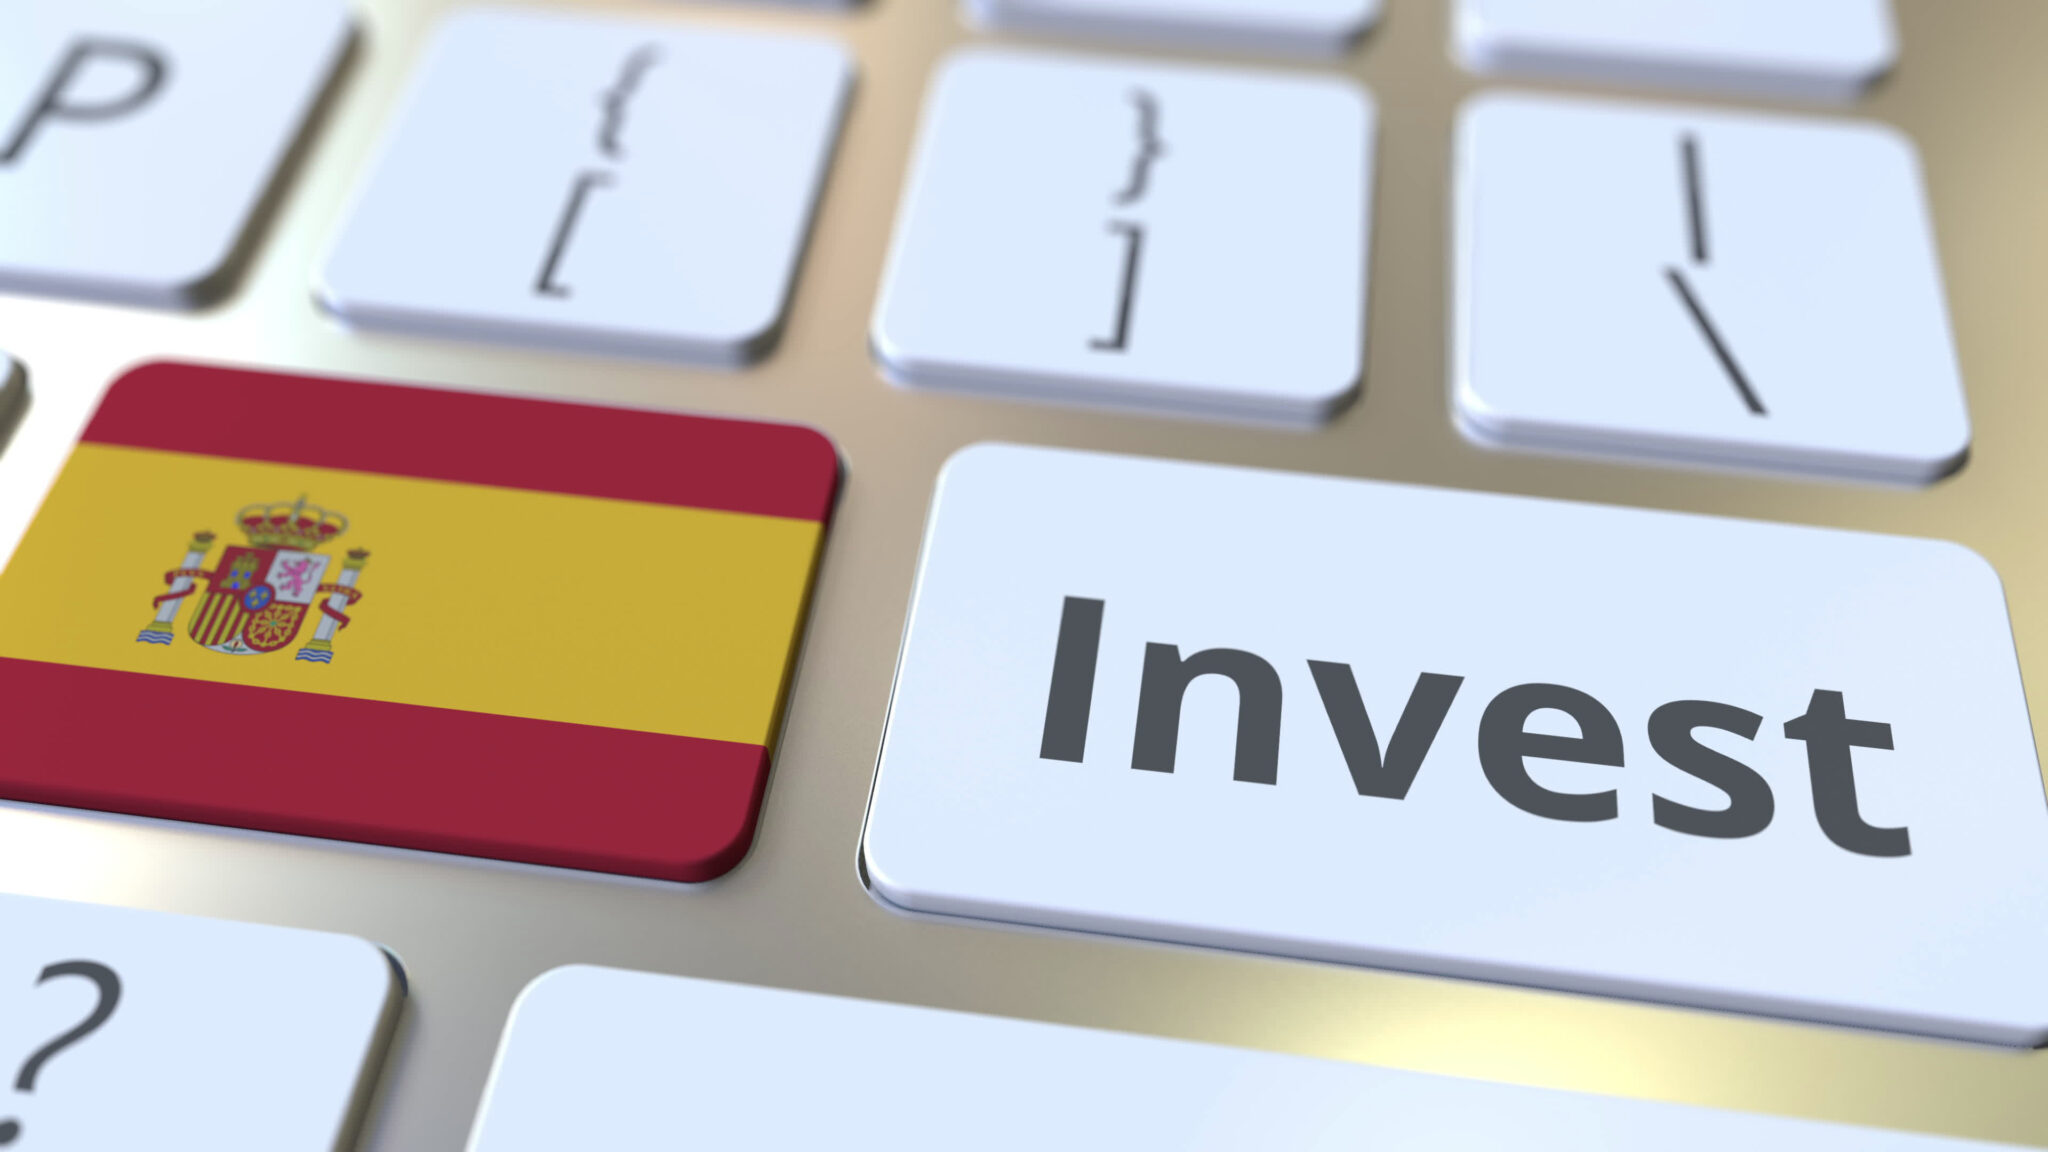 Invest,Text,And,Flag,Of,Spain,On,The,Buttons,On